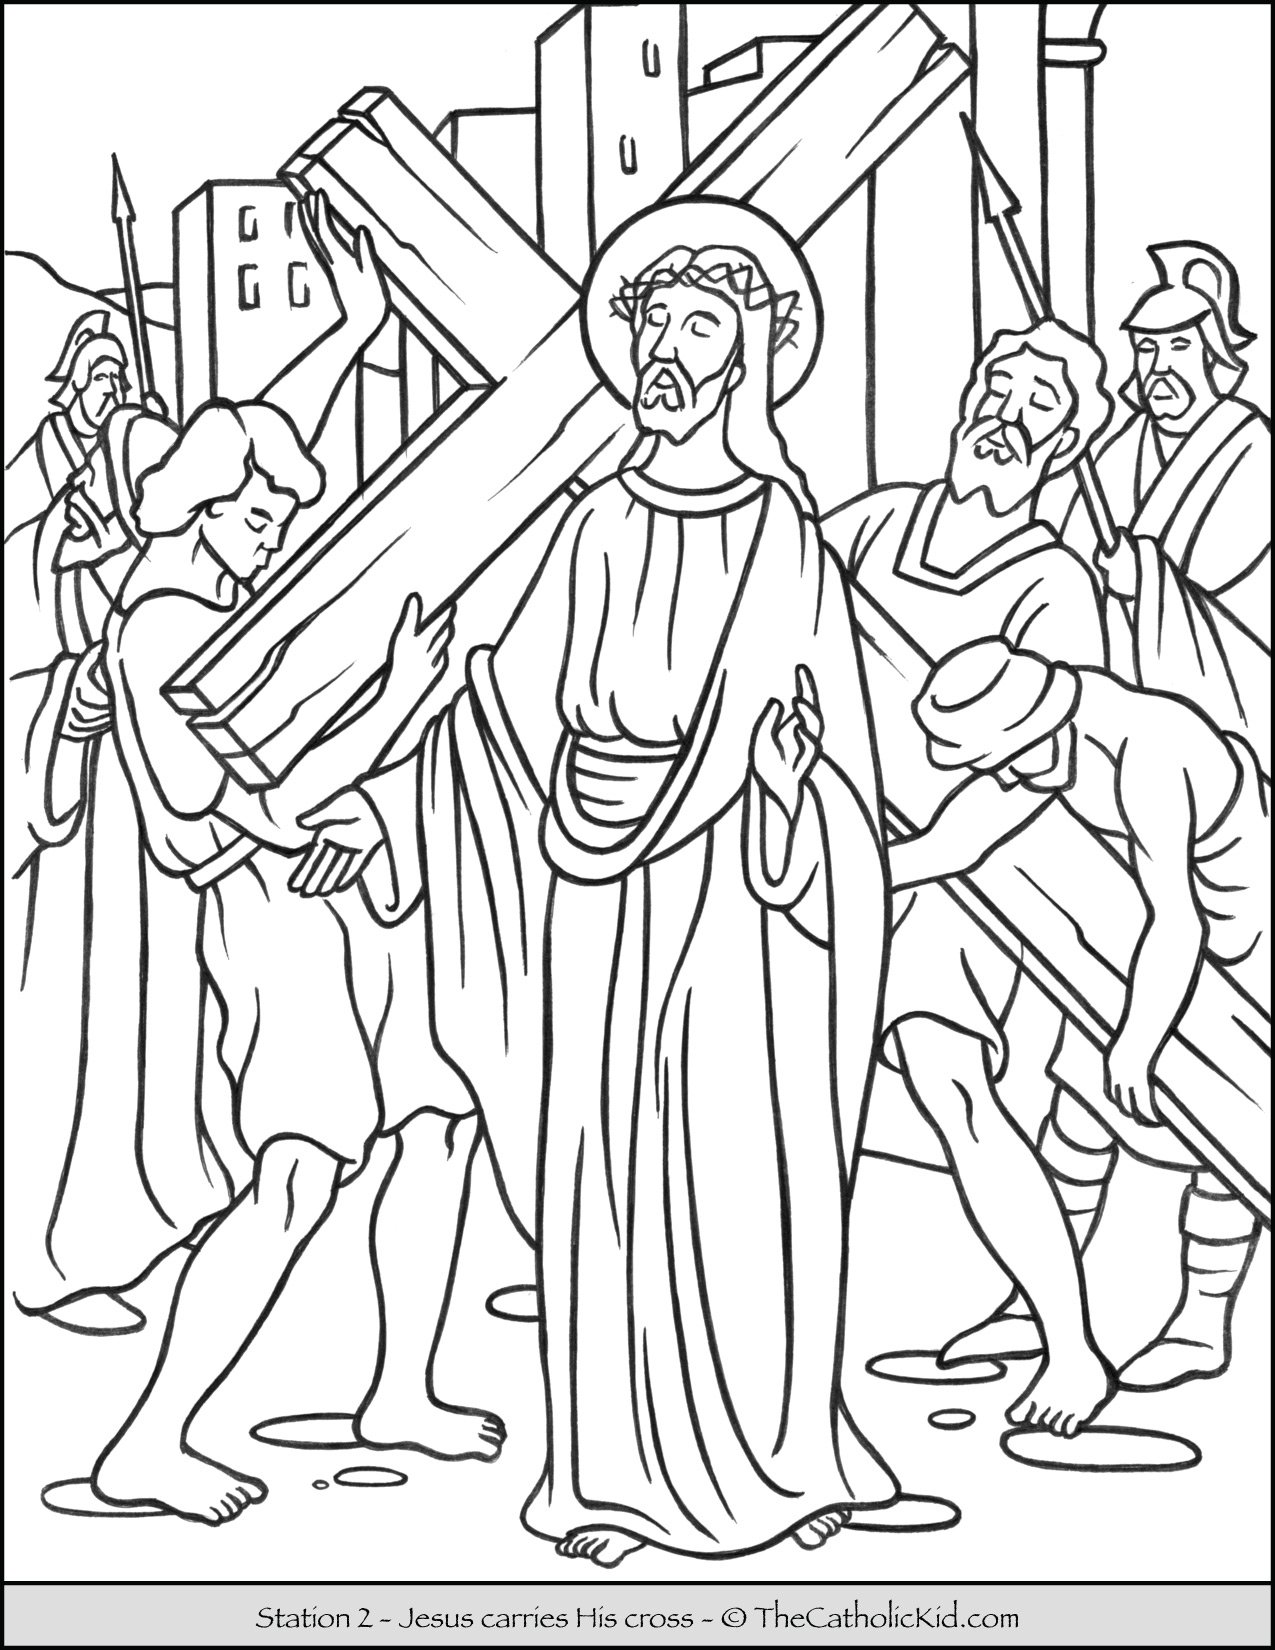 Stations of the Cross Catholic Coloring Pages for Kids 2